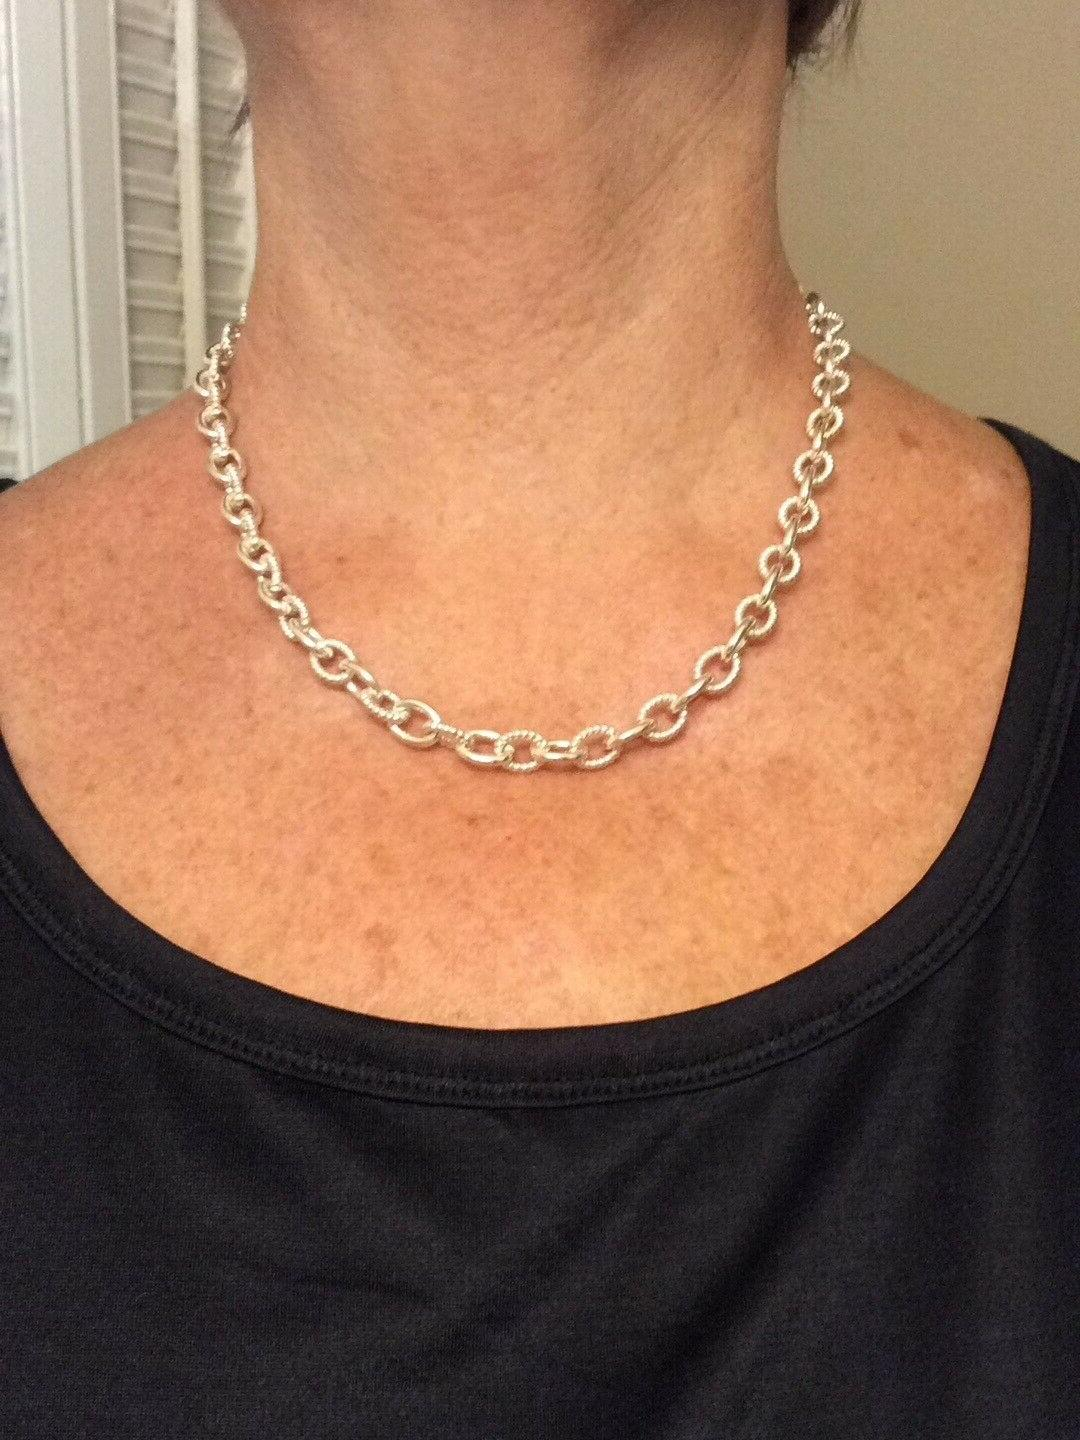 Judith Silver Lock & Key Chain Necklace 18 inches NWOT